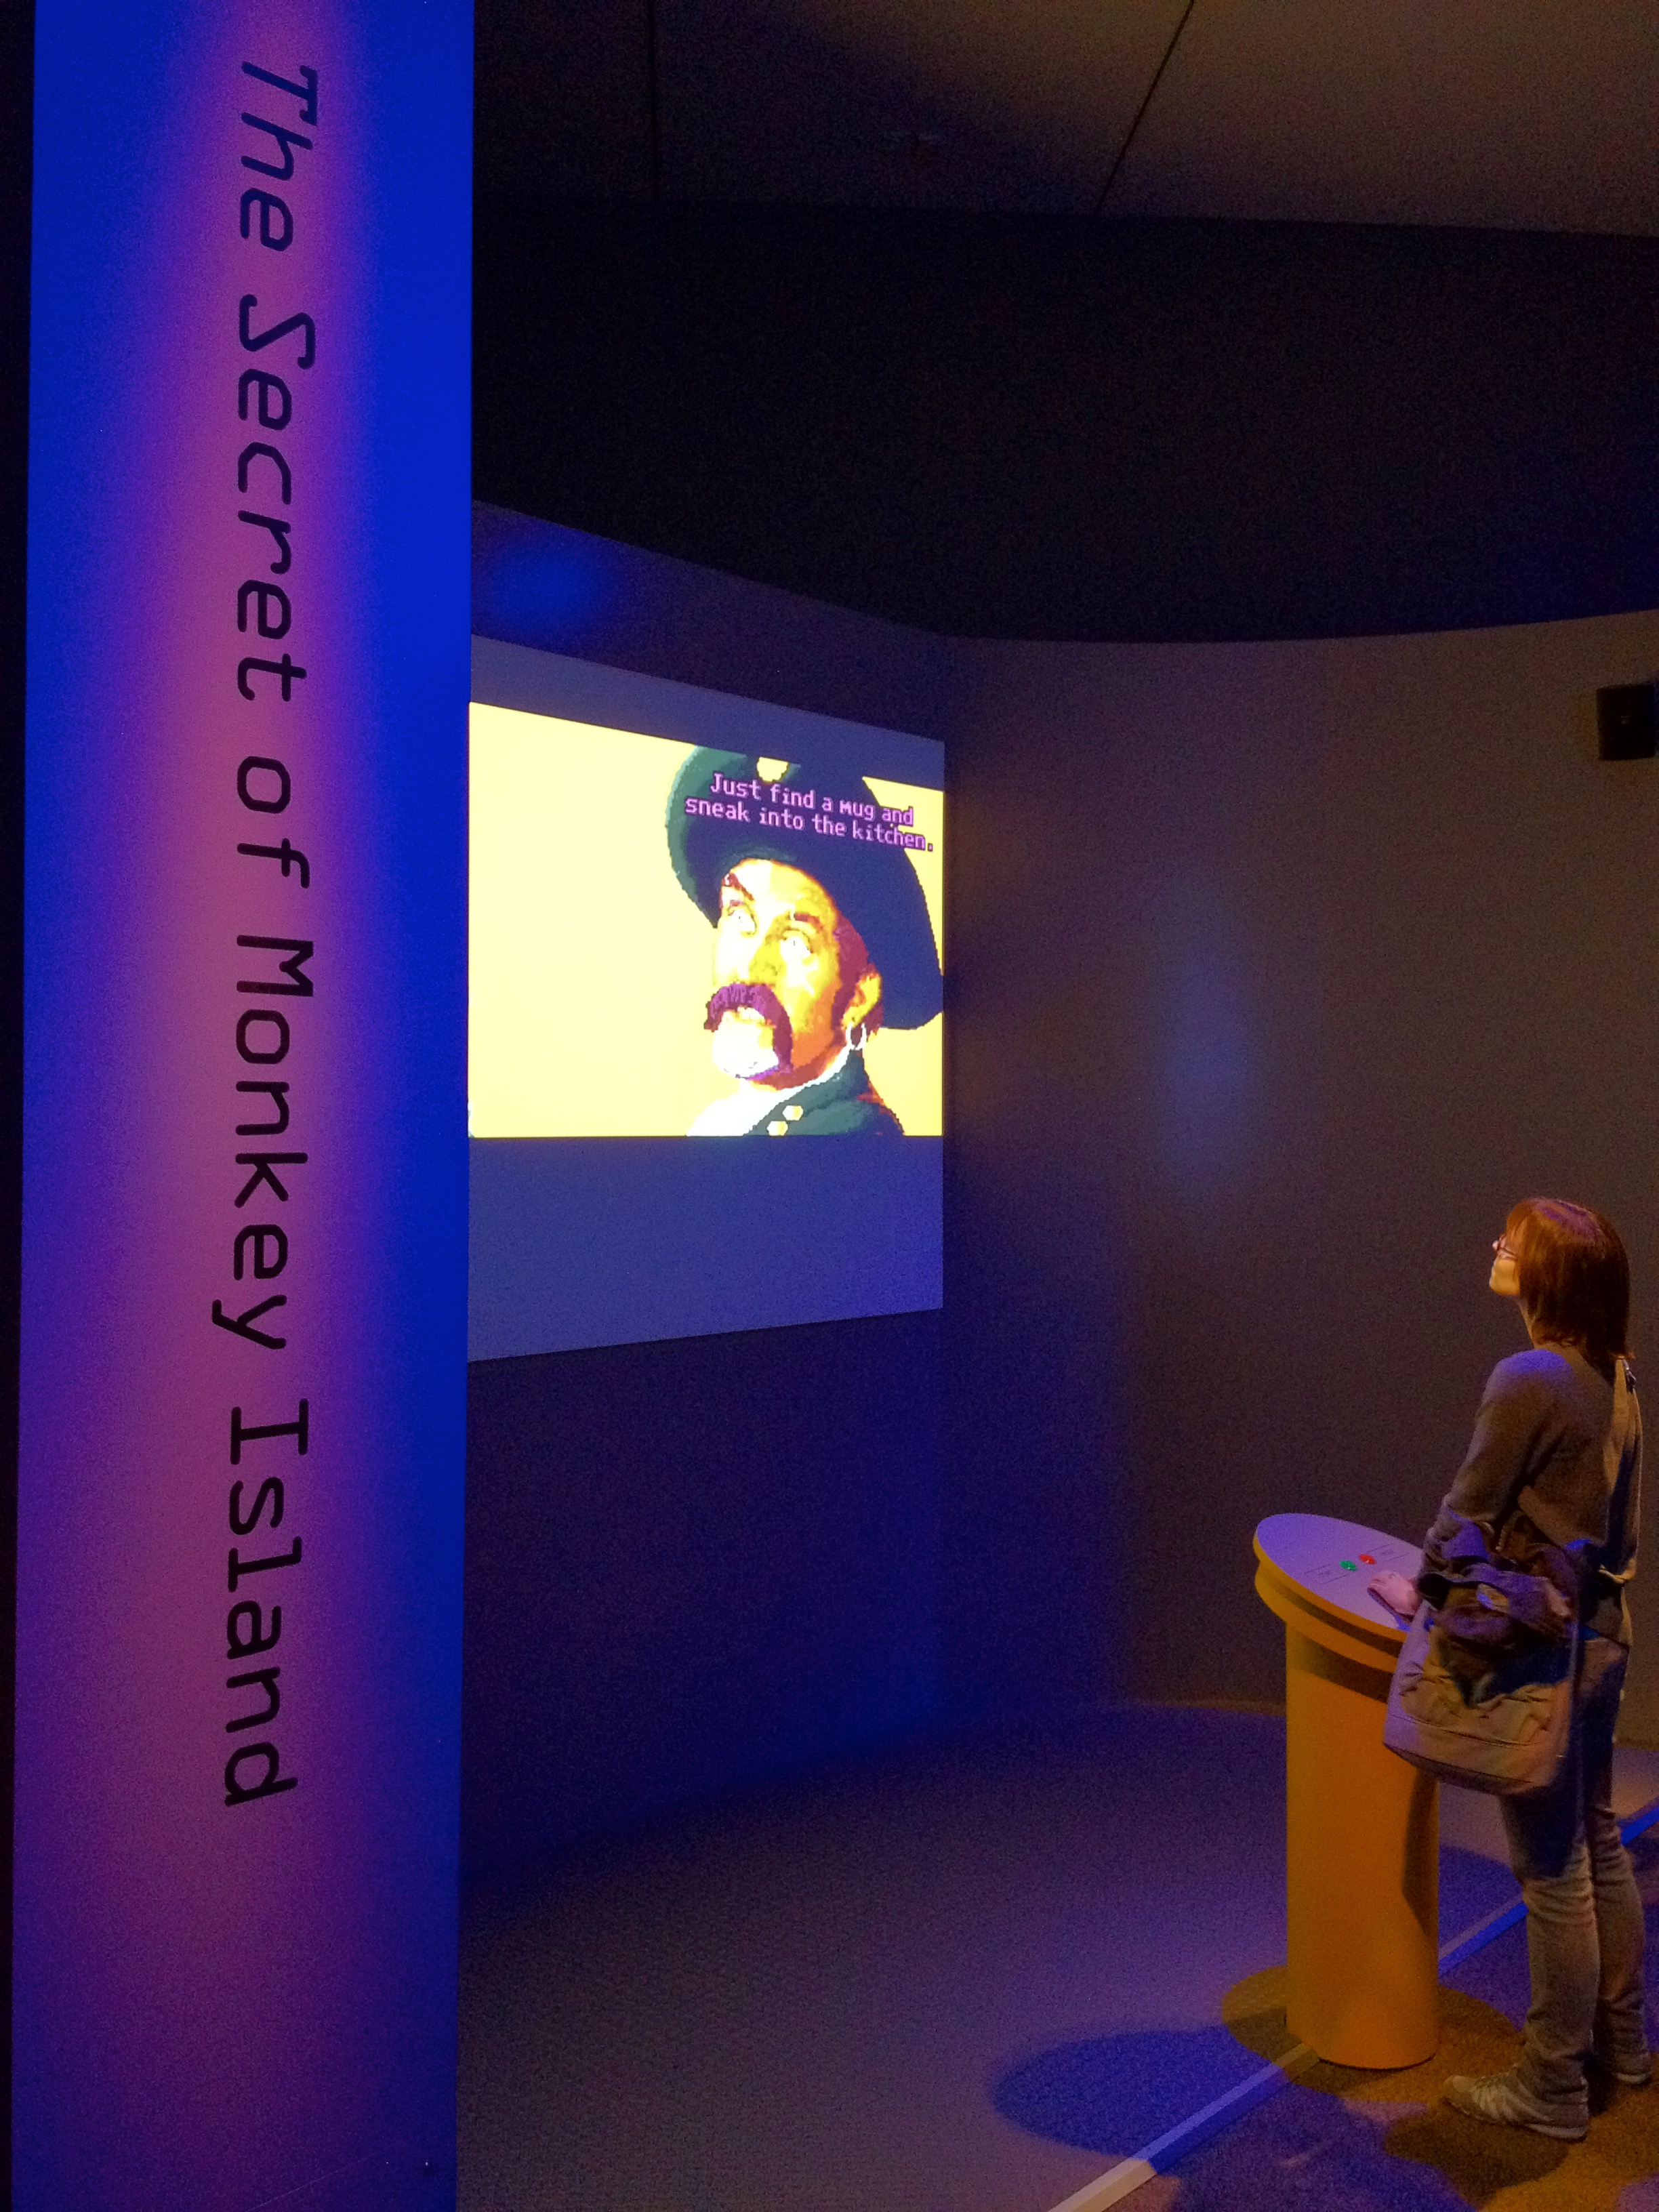 The Art of Video Games 2012 (6994361925).jpg Exhibit at the Smithsonian American Art Museum (March 16, 2012 - September 30, 2012) Photos from